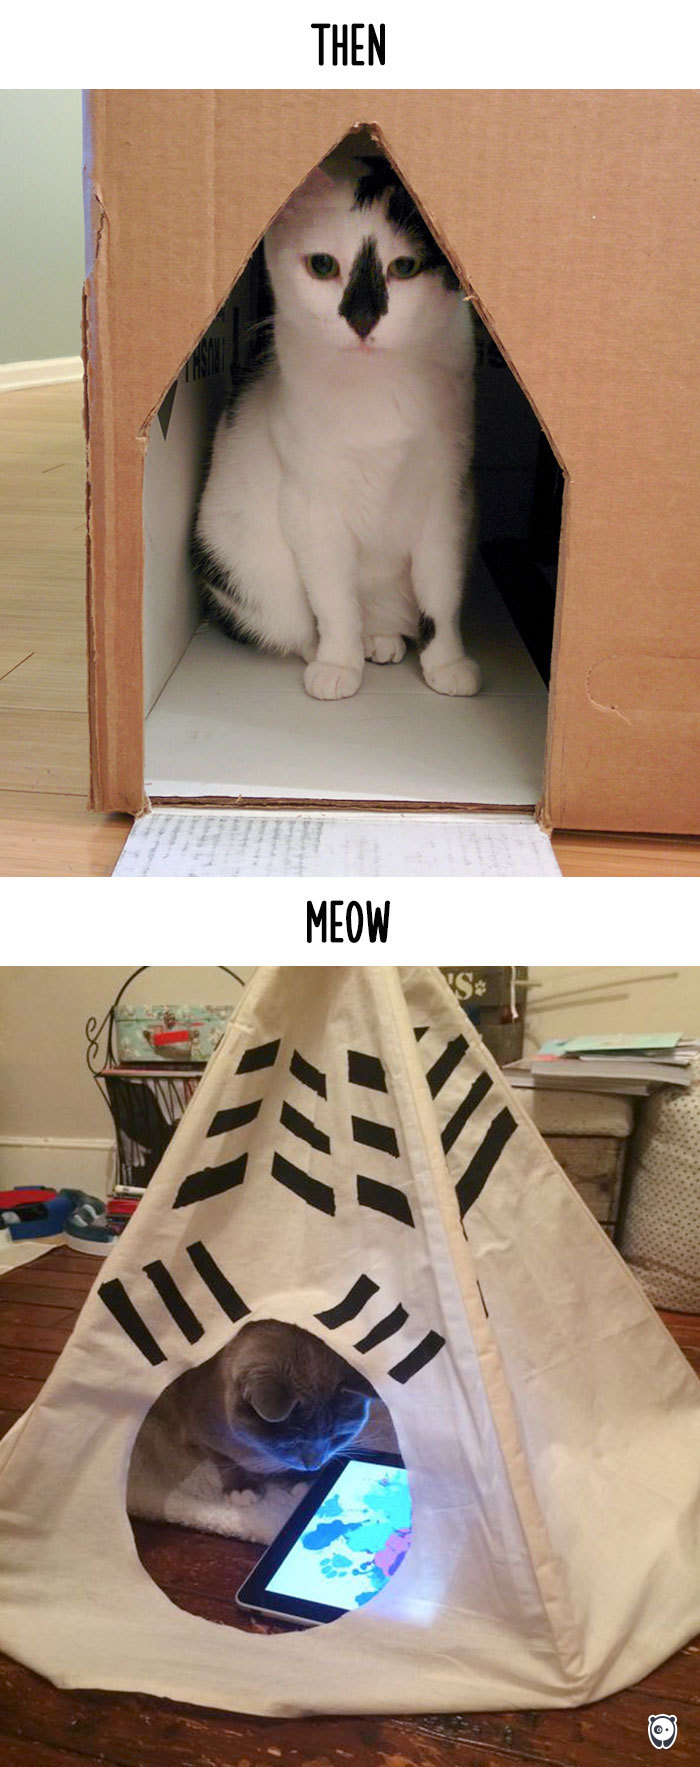 cats-then-now-funny-technology-change-life-20-571625ec249b3_700.jpg